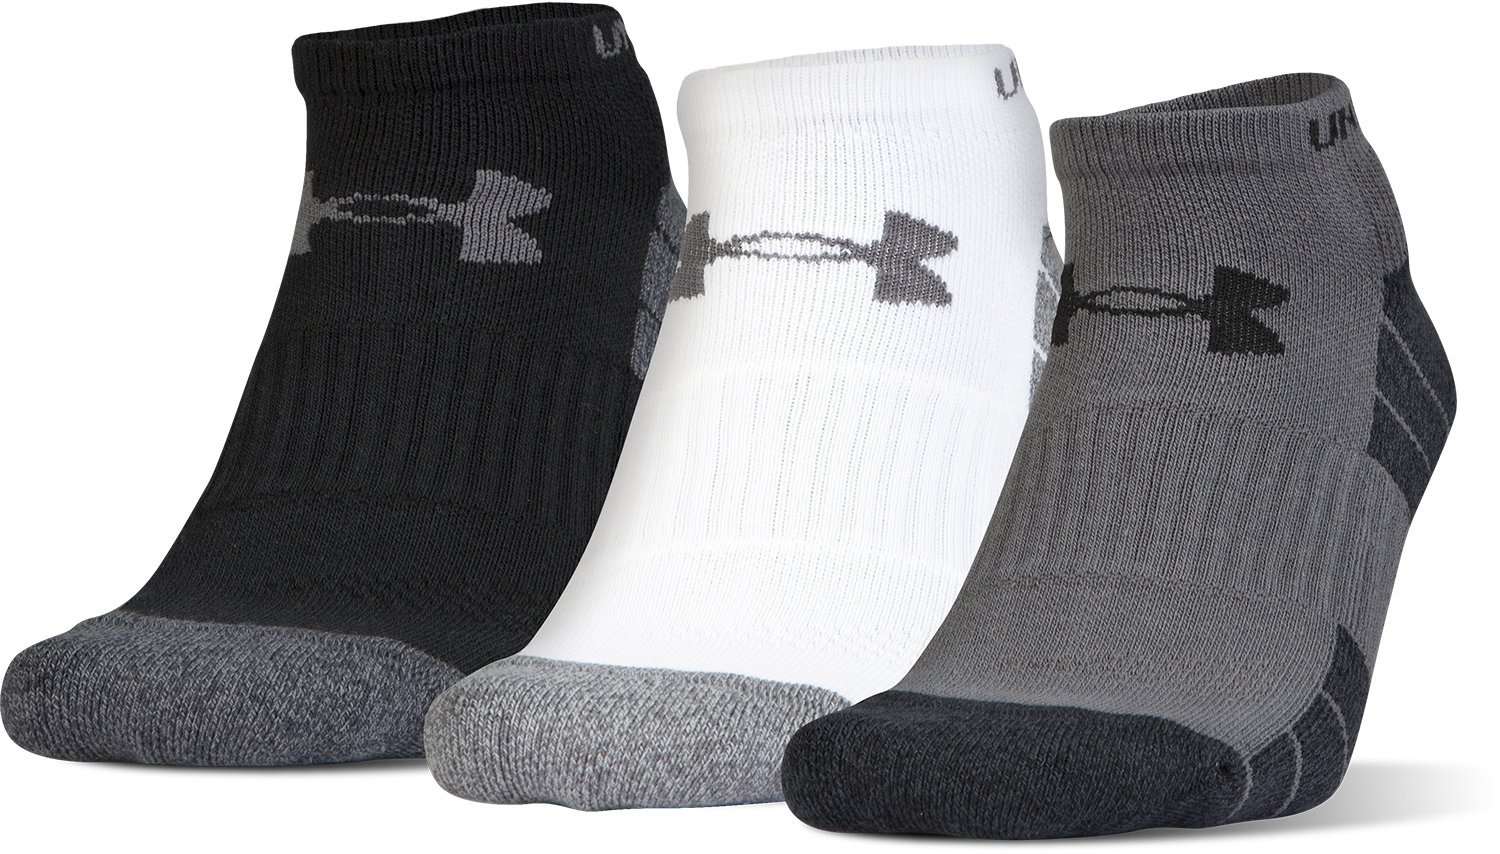 Under Armour Men's Elevated Performance No Show (3 Pack), Graphite Marl/Assorted, Large by Under Armour